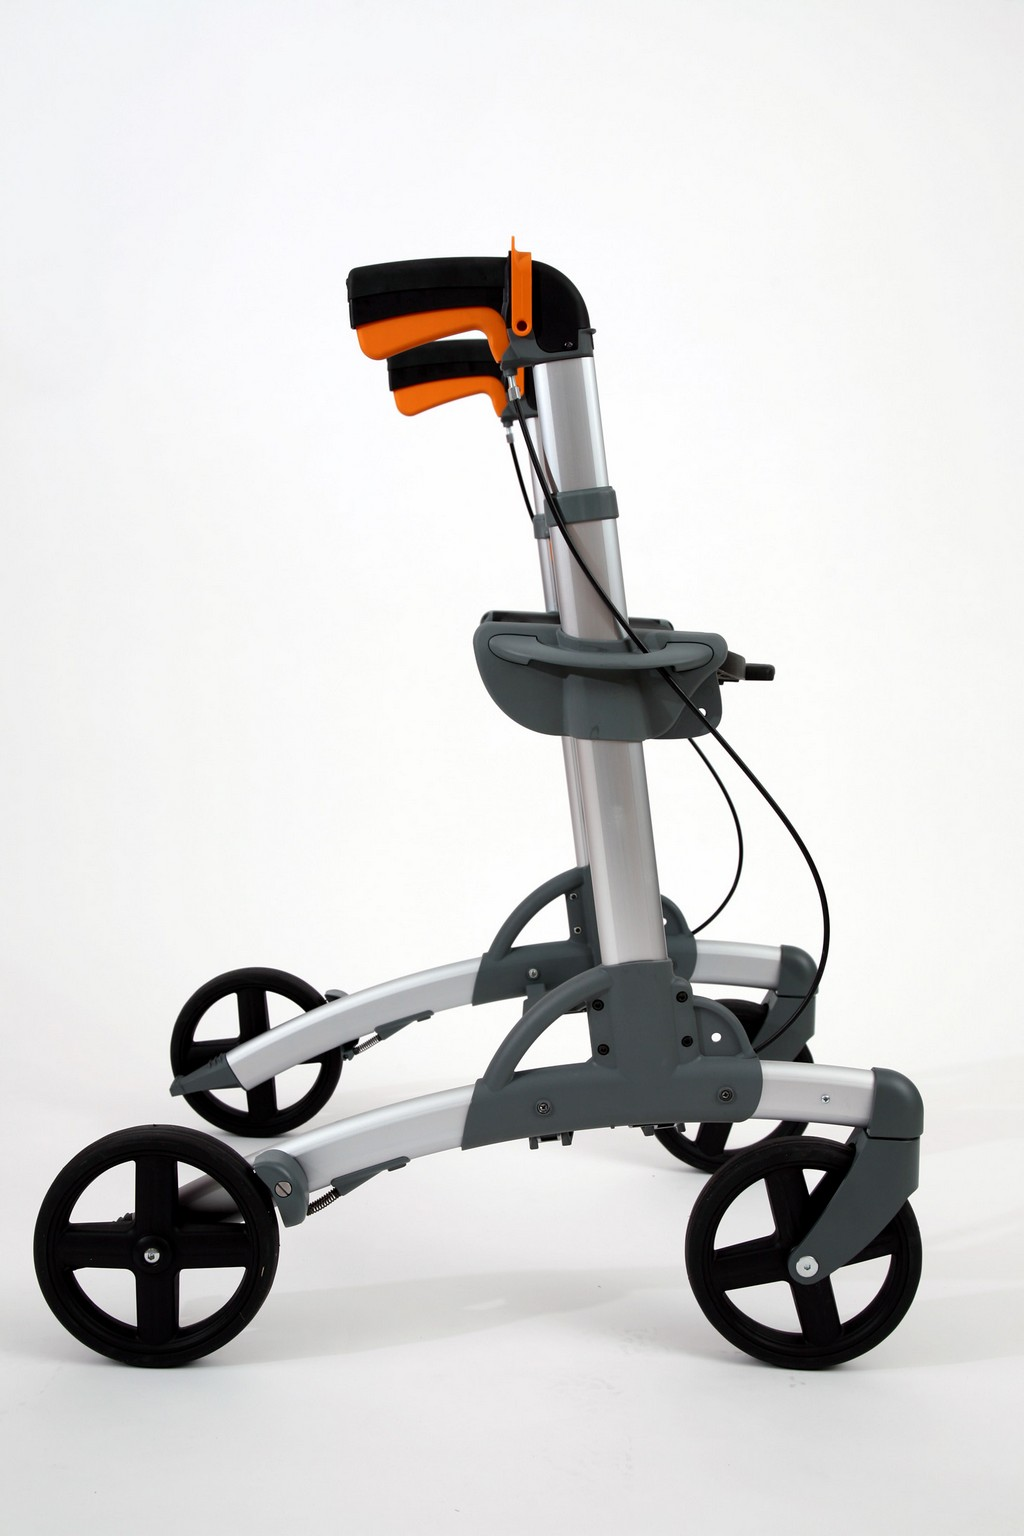 where to buy rollators, lumex hybrid x rollator, cosco rollators, rollators for sale in poland